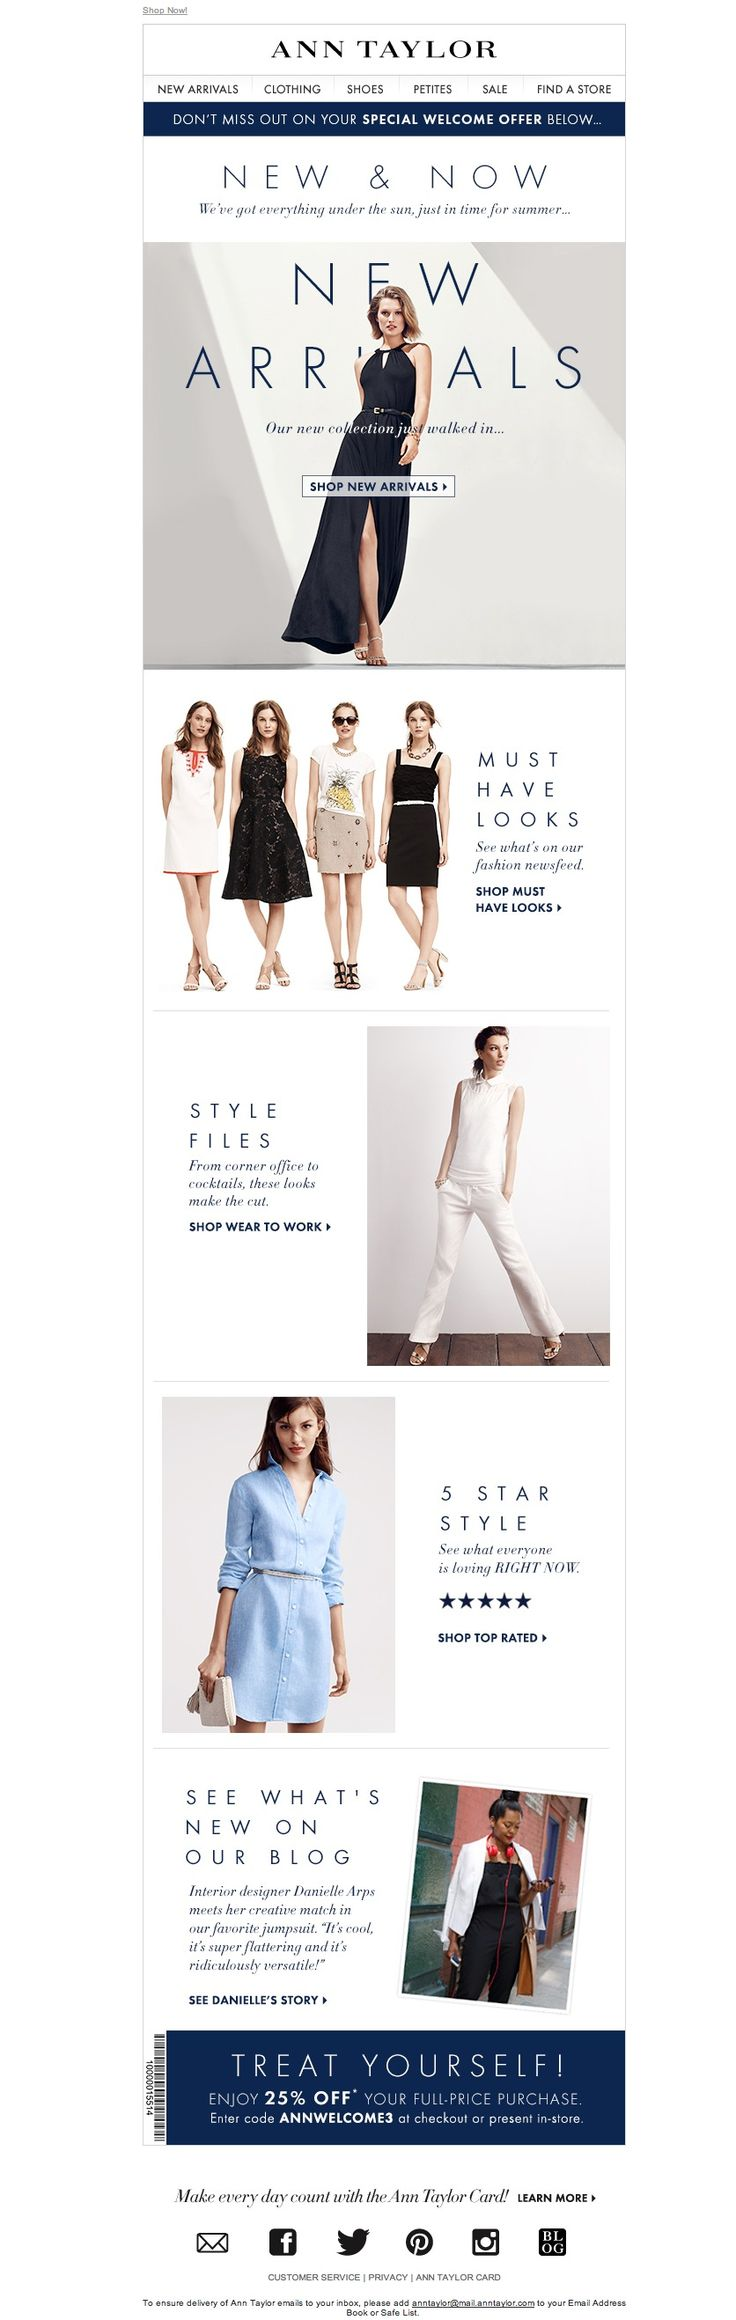 #newsletter Ann Taylor 07.2014 See What's New & Now (Plus, A Special Offer!)